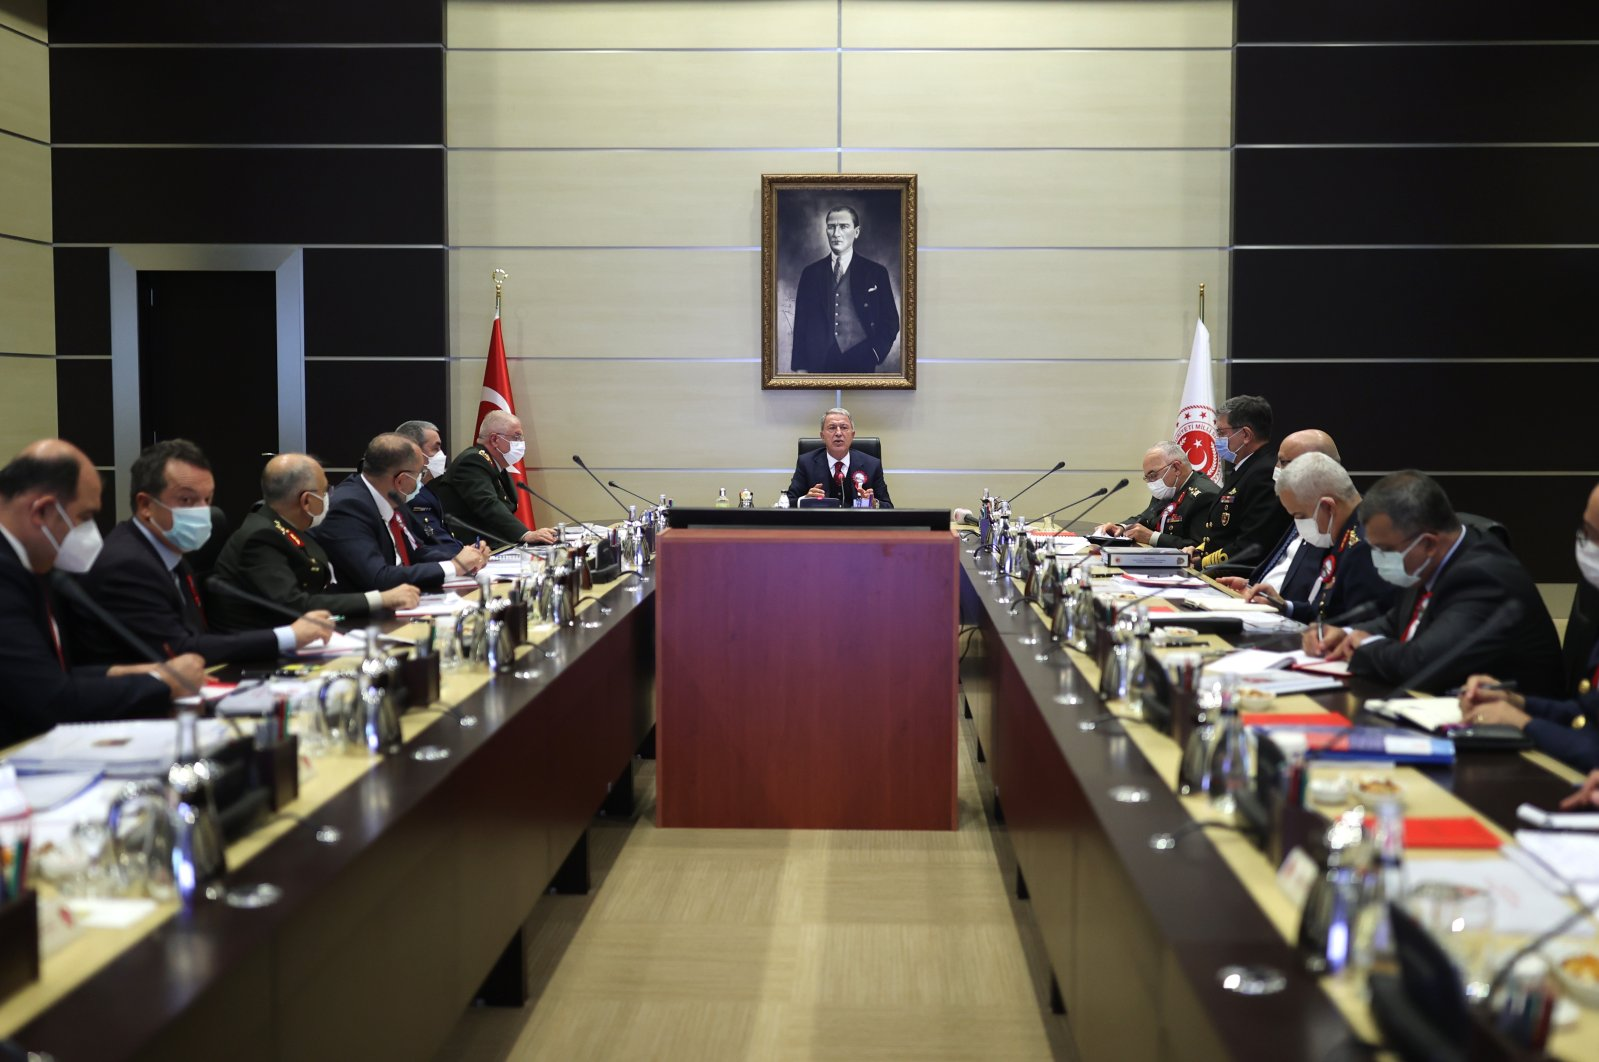 Defense Minister Hulusi Akar chairs a military evaluation meeting in Istanbul, Turkey, Oct. 14, 2021. (AA Photo)